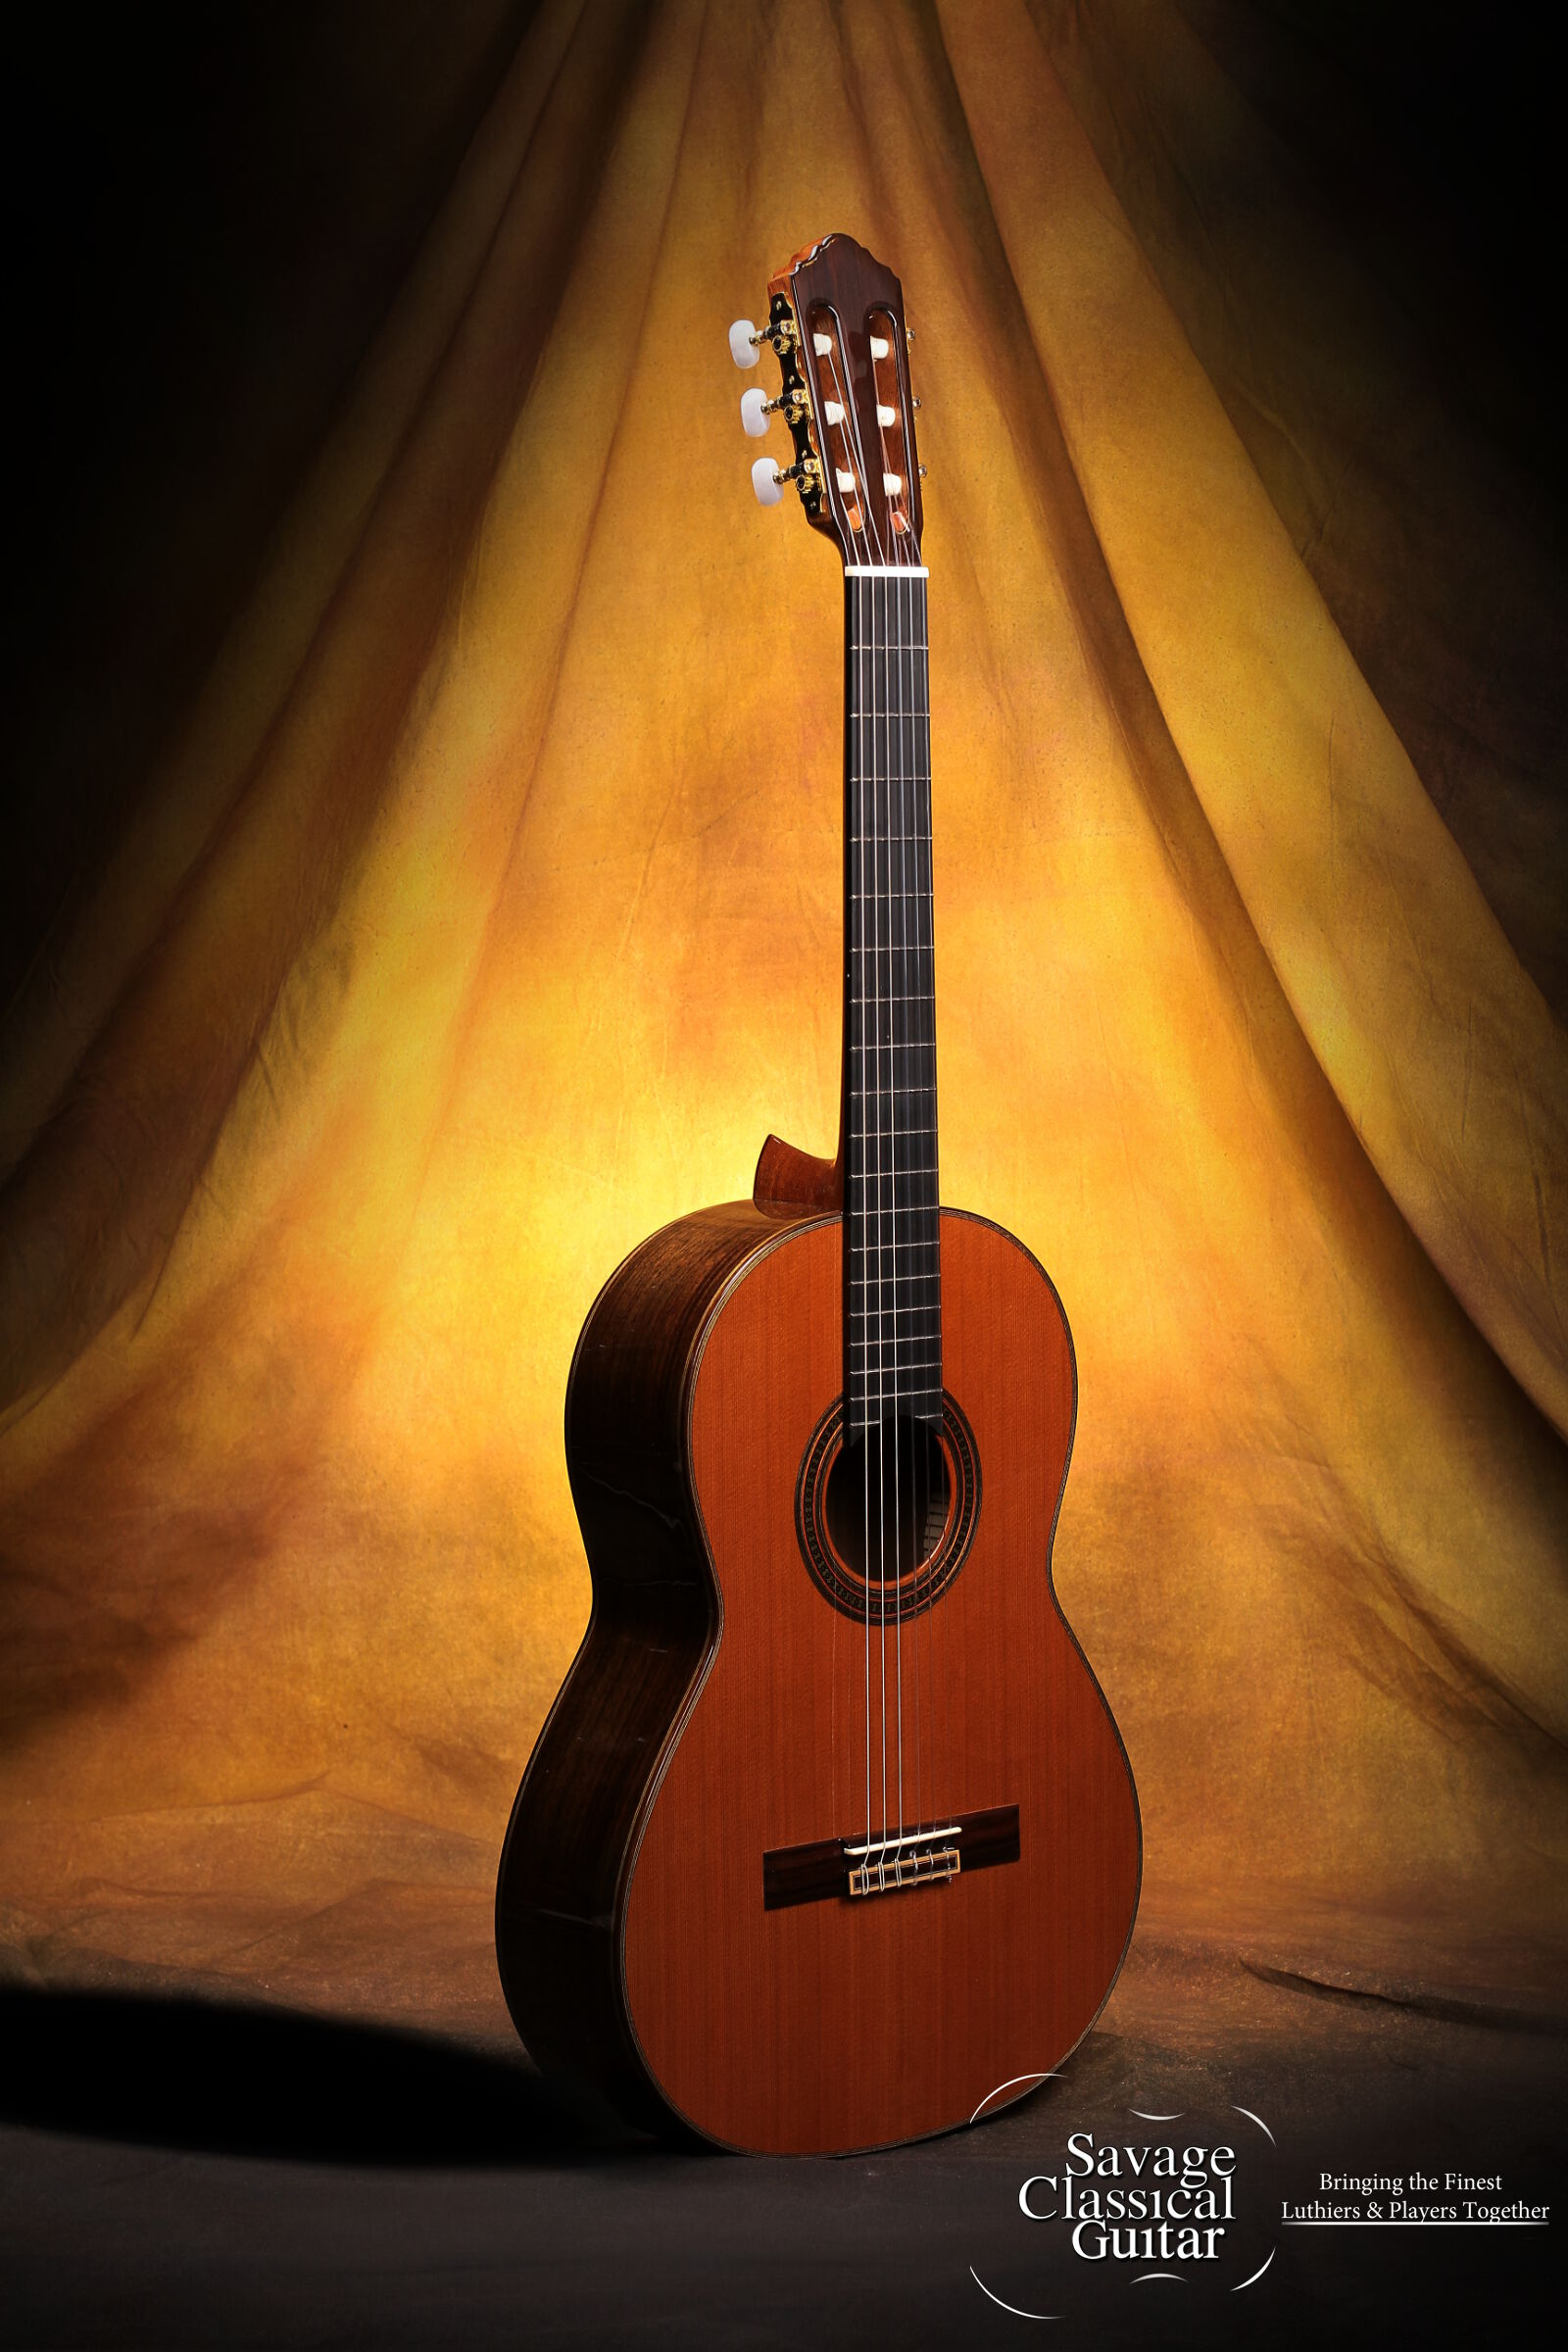 Hill Classical Guitar Player offered by Savage Classical Guitar